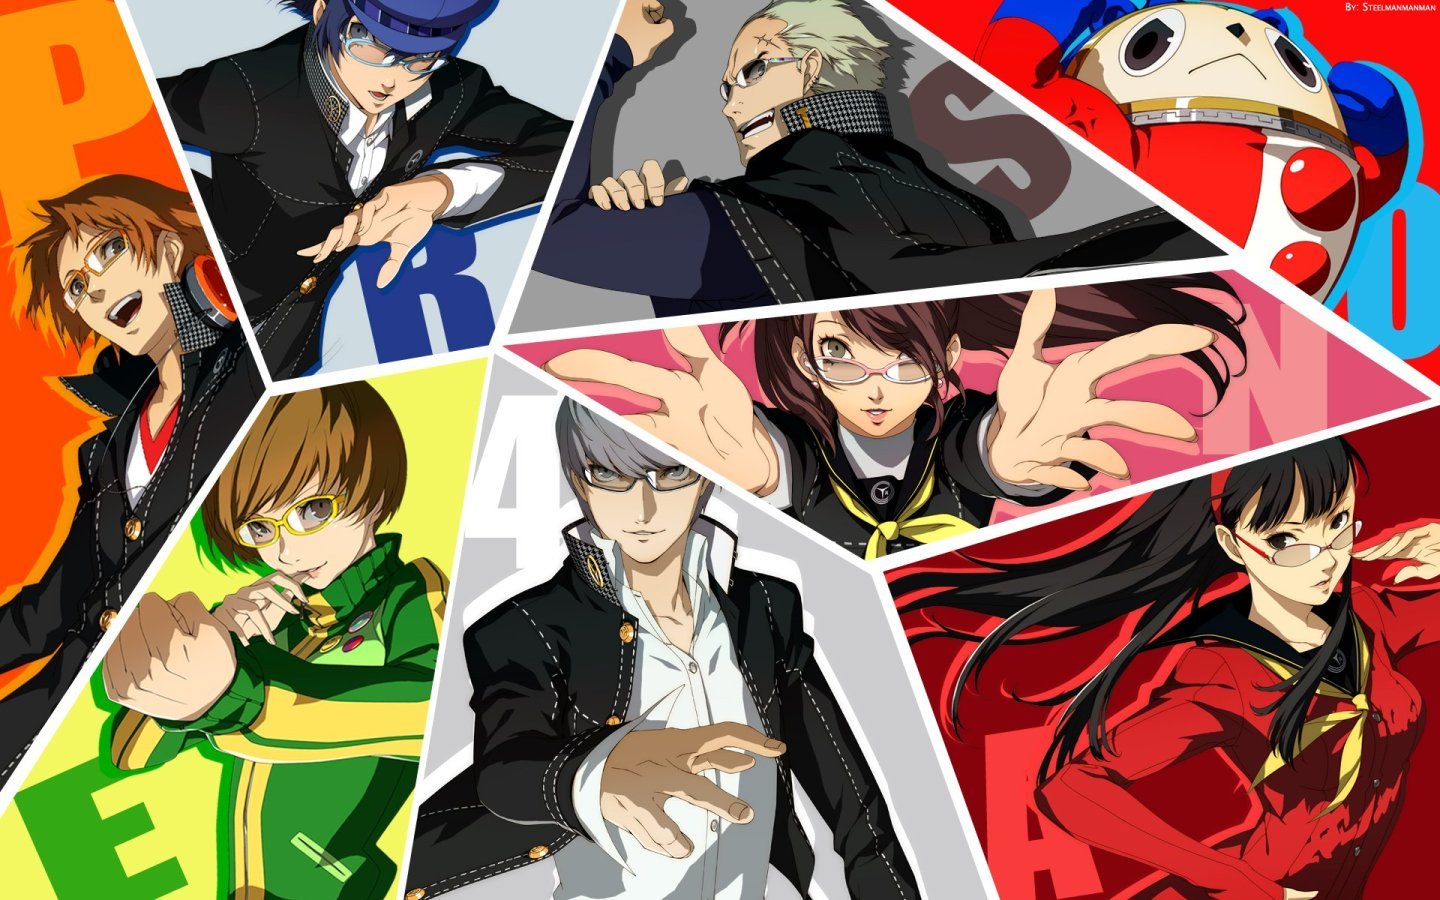 The investigation team of Persona 4 Golden